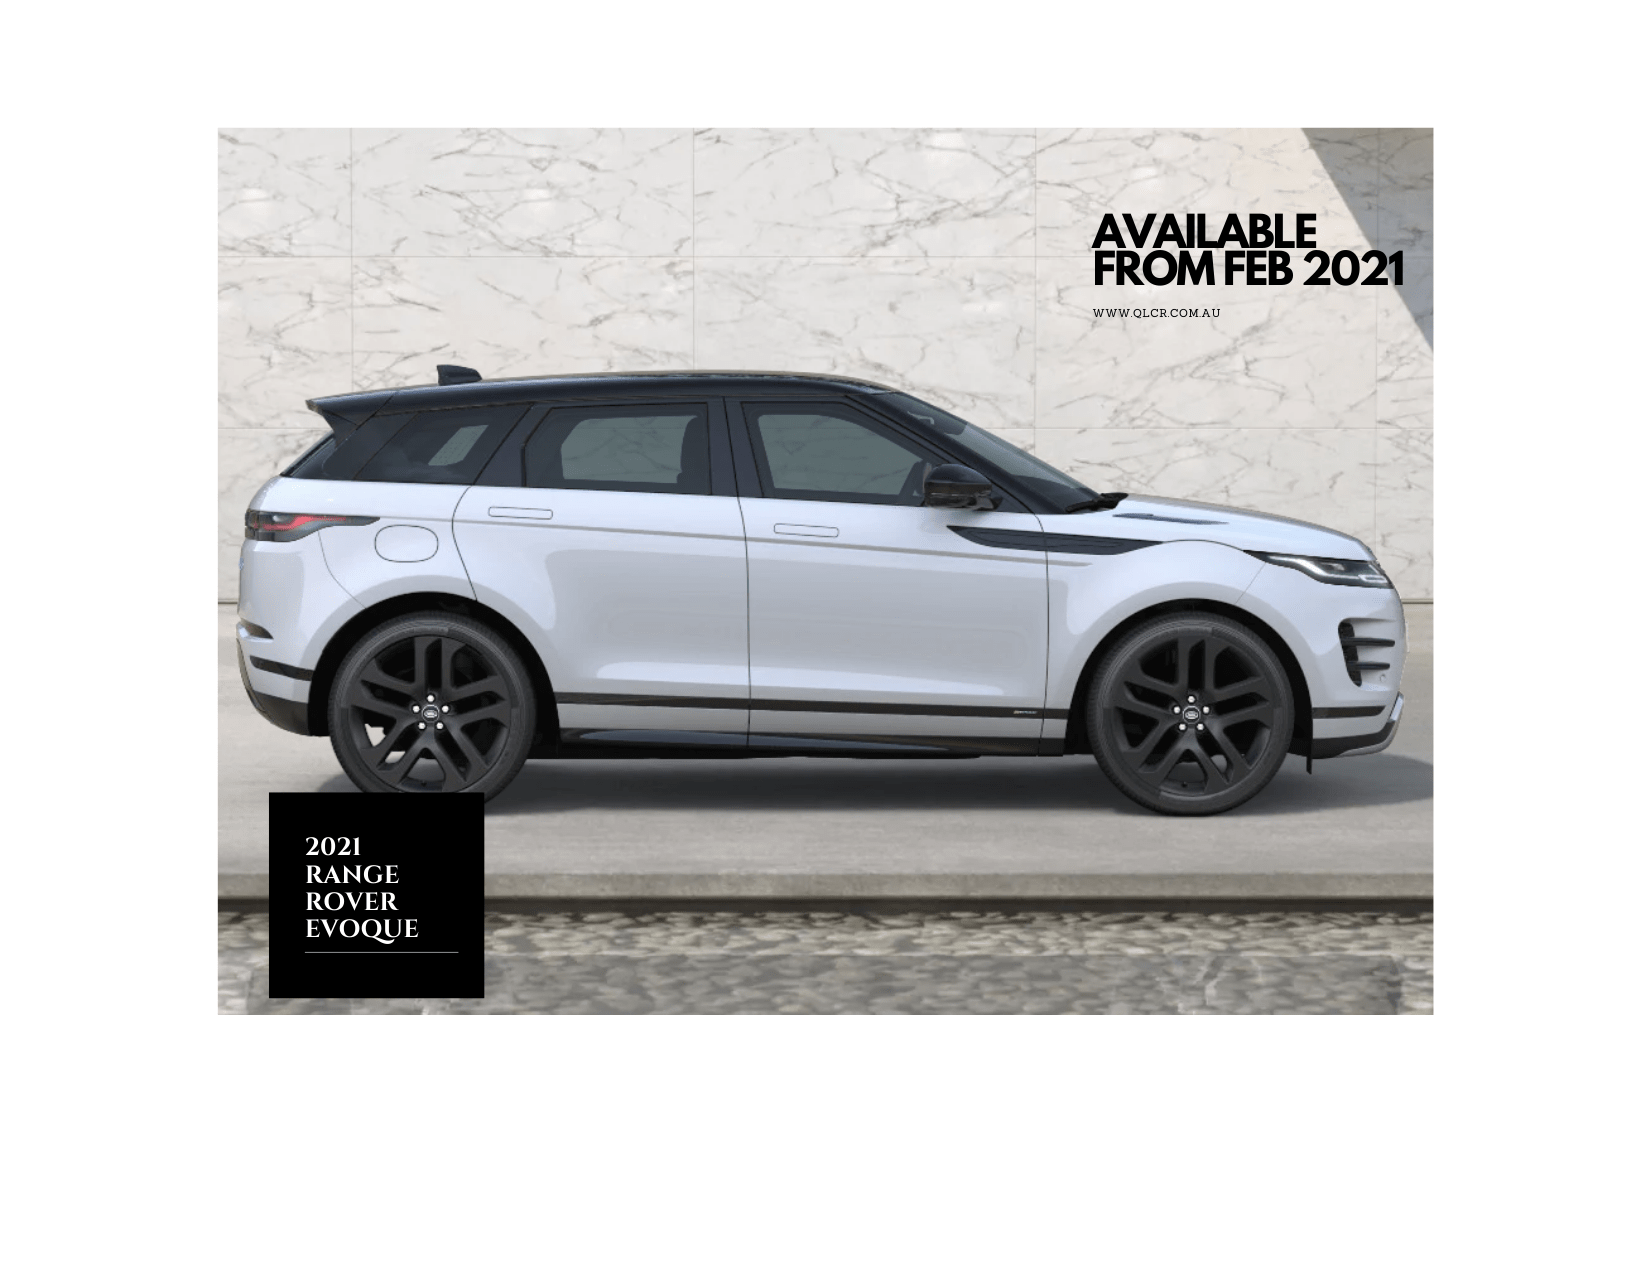 Range Rover Evoque Hire  Gold Coast & Brisbane   -  Range Rover Evoque Hire  Rental & Hire